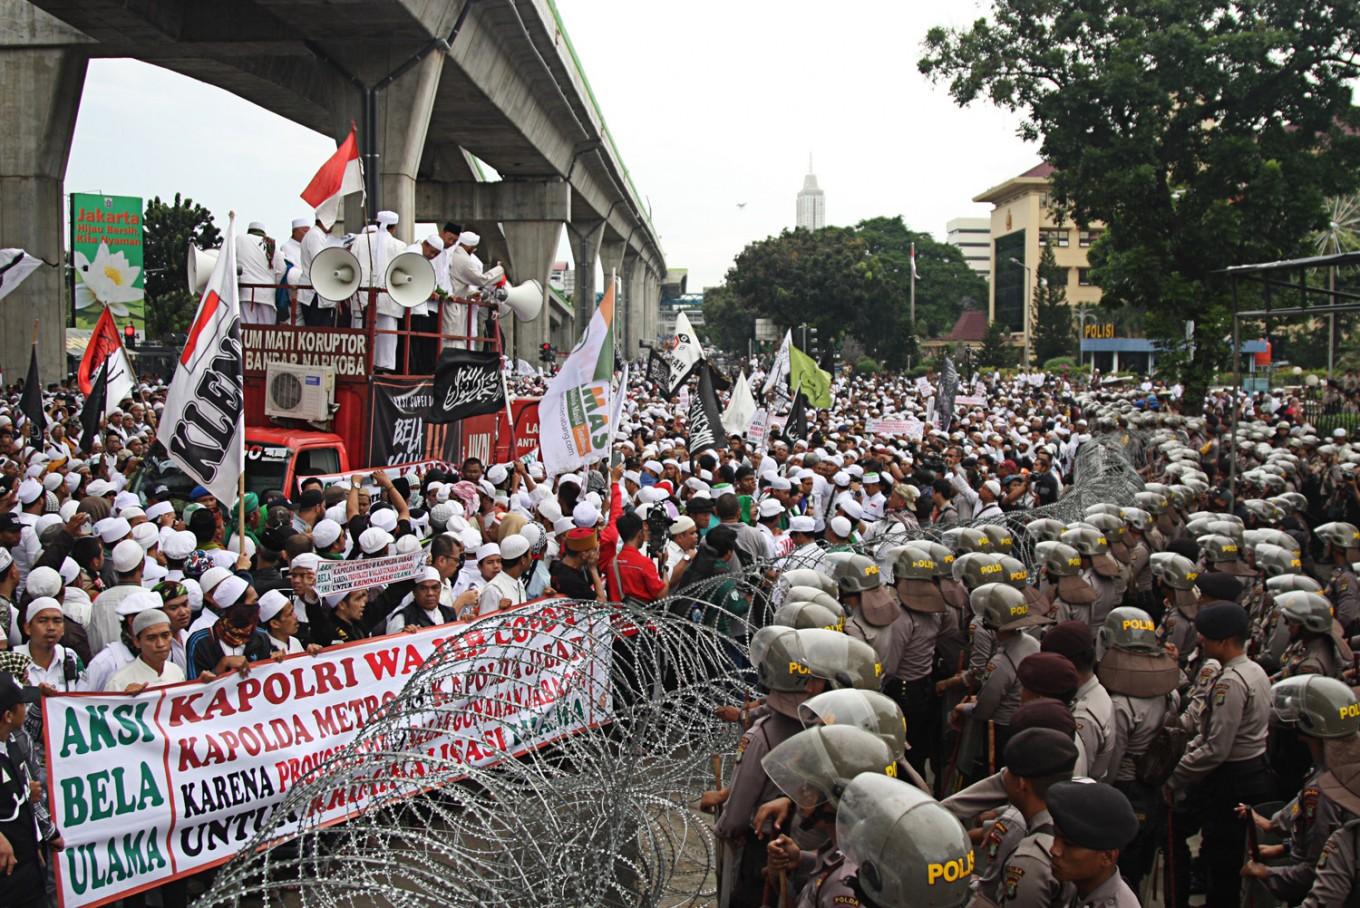 NU, Muhammadiyah suffer setbacks over their roles in society